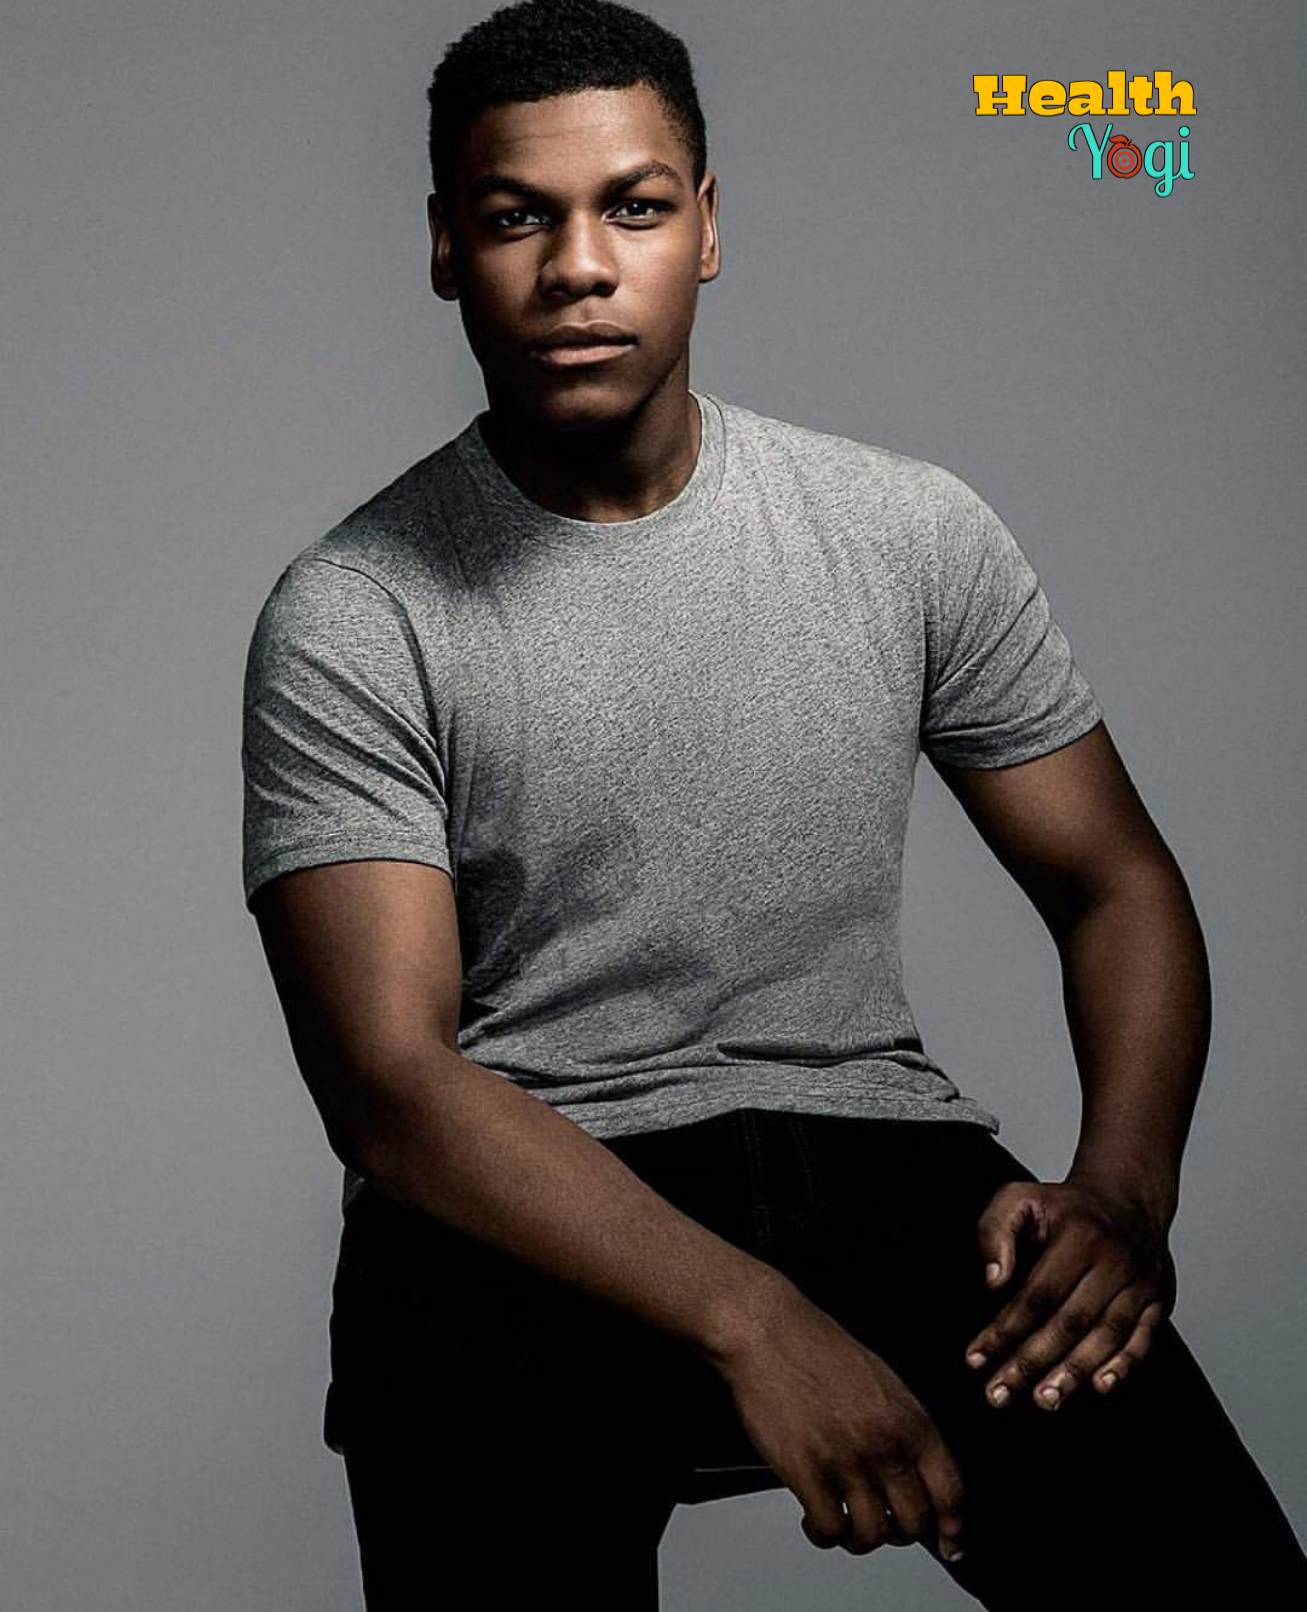 John Boyega Workout Routine and Diet Plan| Fitness Training for Star Wars: The Rise of Skywalker